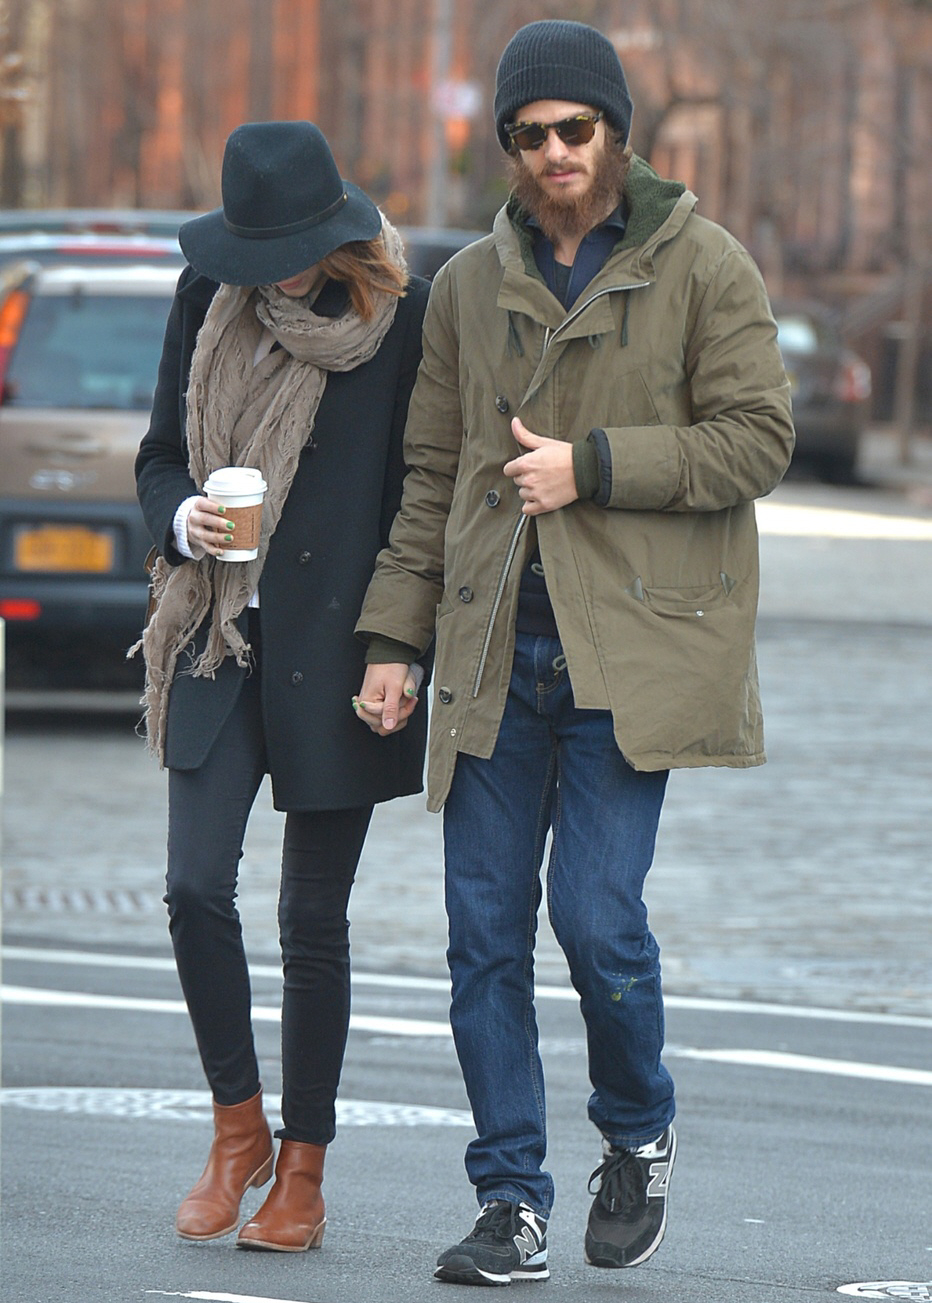 Andrew Garfield's beard has gotten loopy: hipster nonsense or next-level hobo?